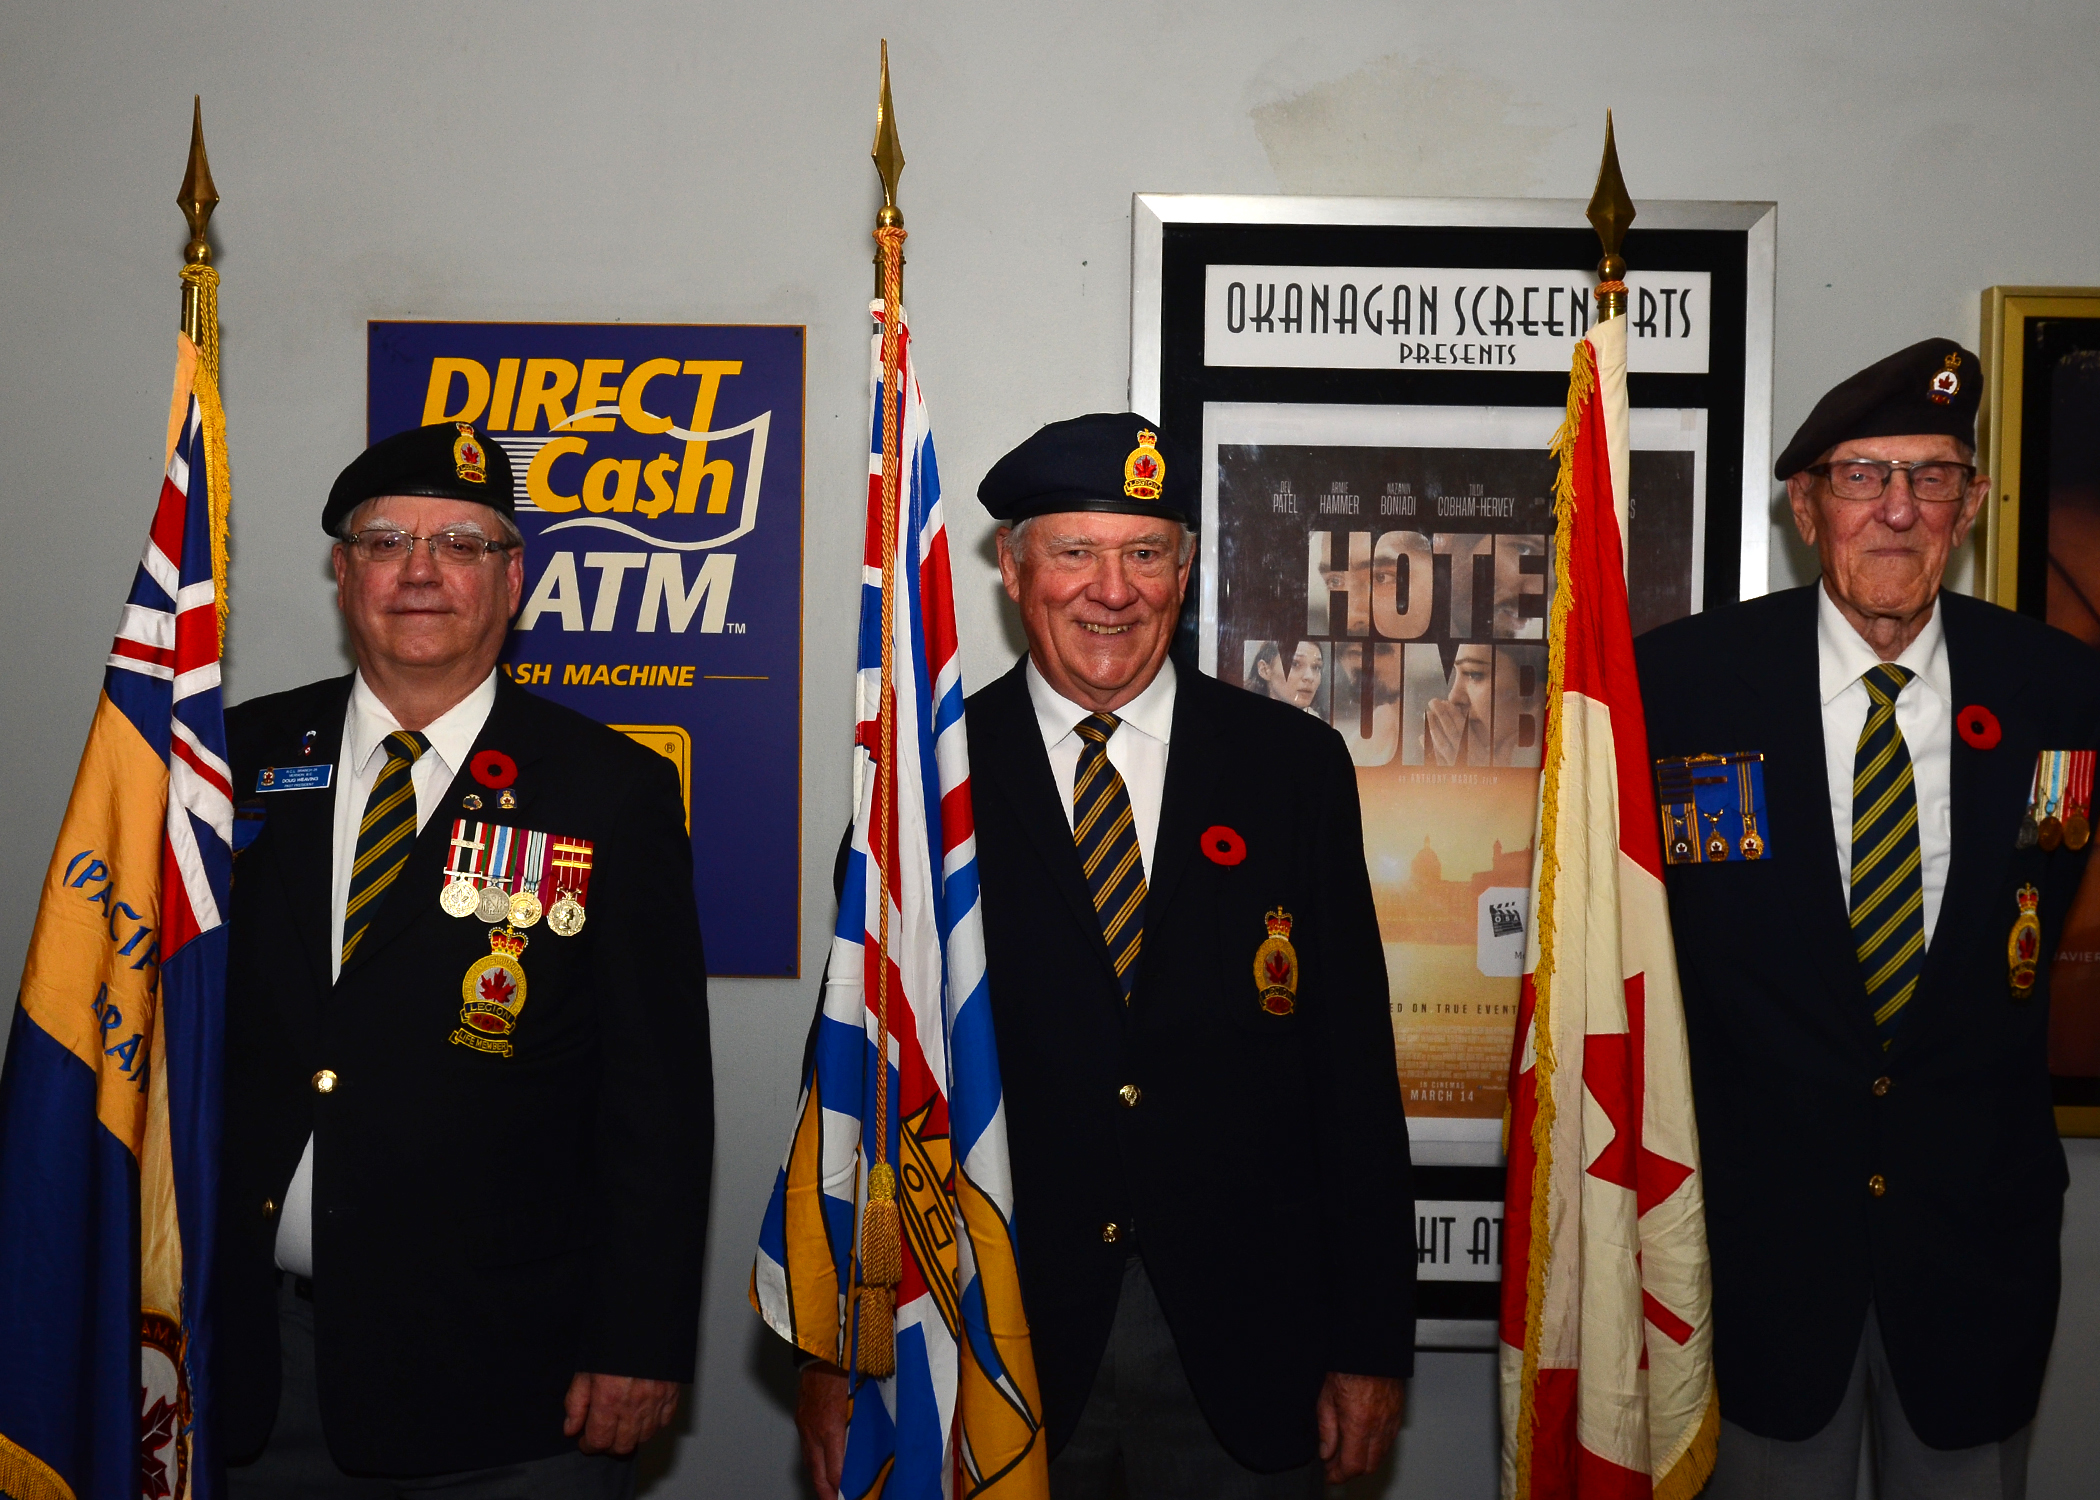 Royal Canadian Legion Vernon Branch Honour Guard in the Towne Cinema Lobby